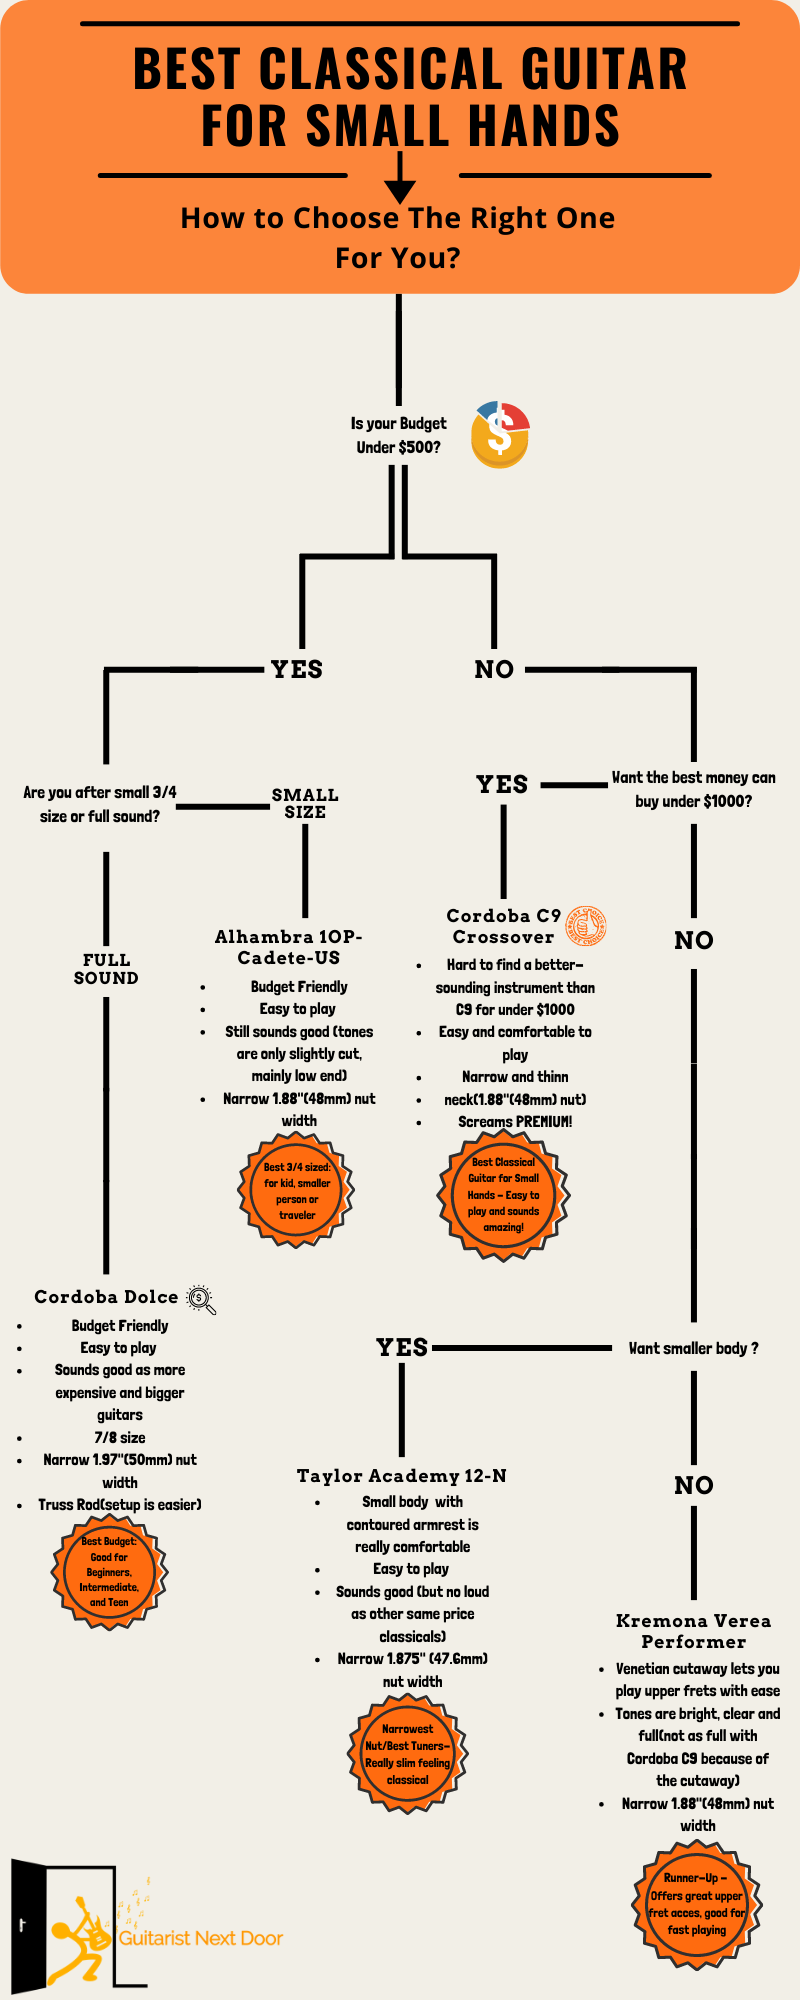 Decision tree helps readers to decide which classical guitar for small hands is right for them